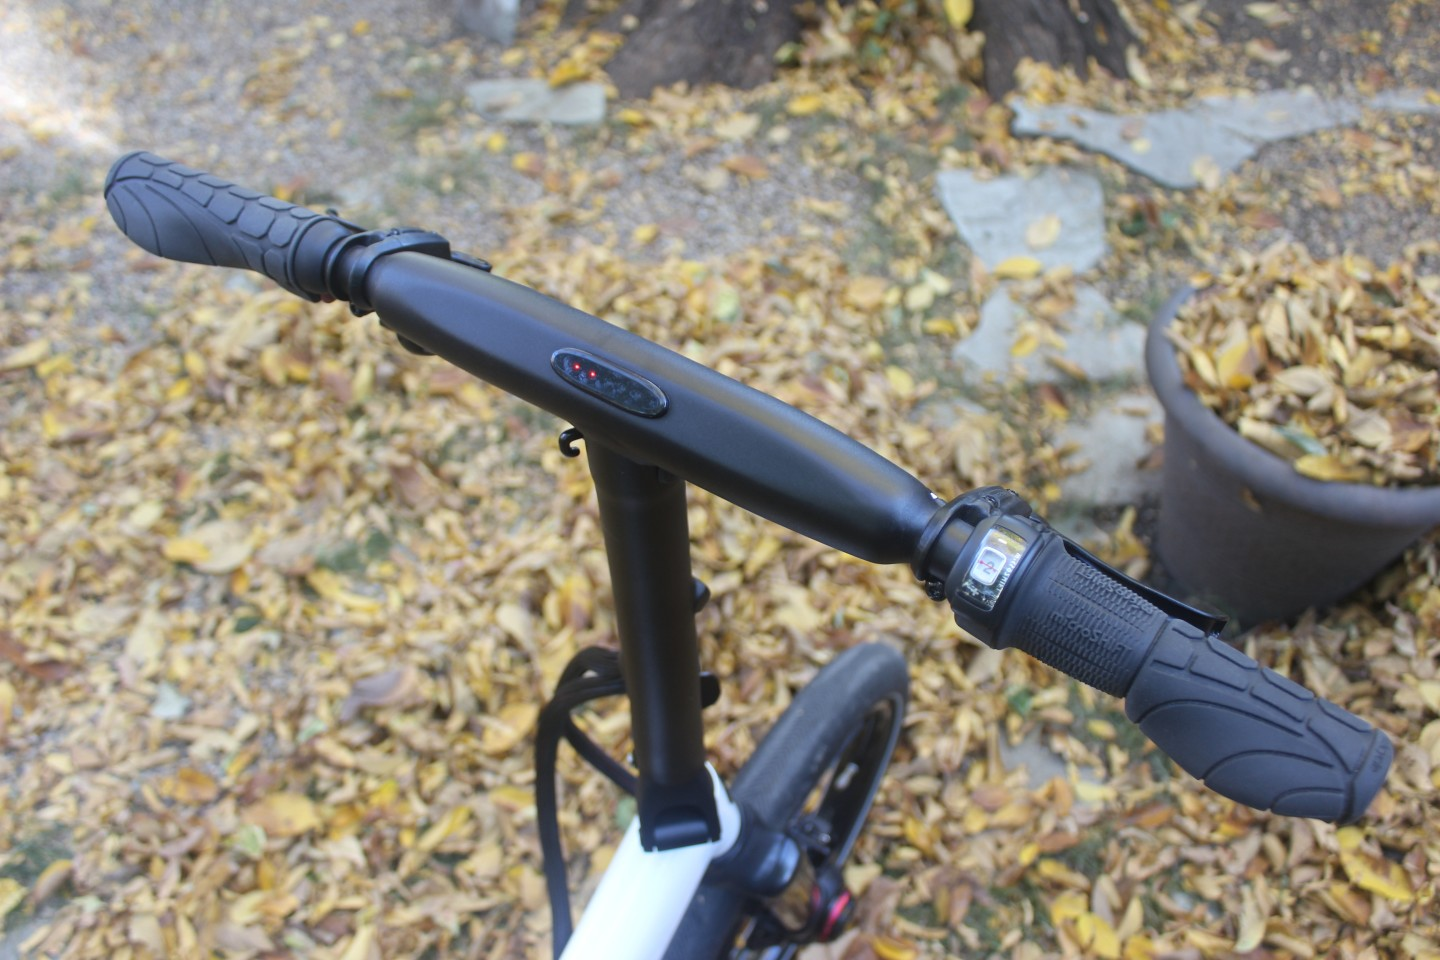 Time for a recharge – LEDs on the handlebar indicate the battery level